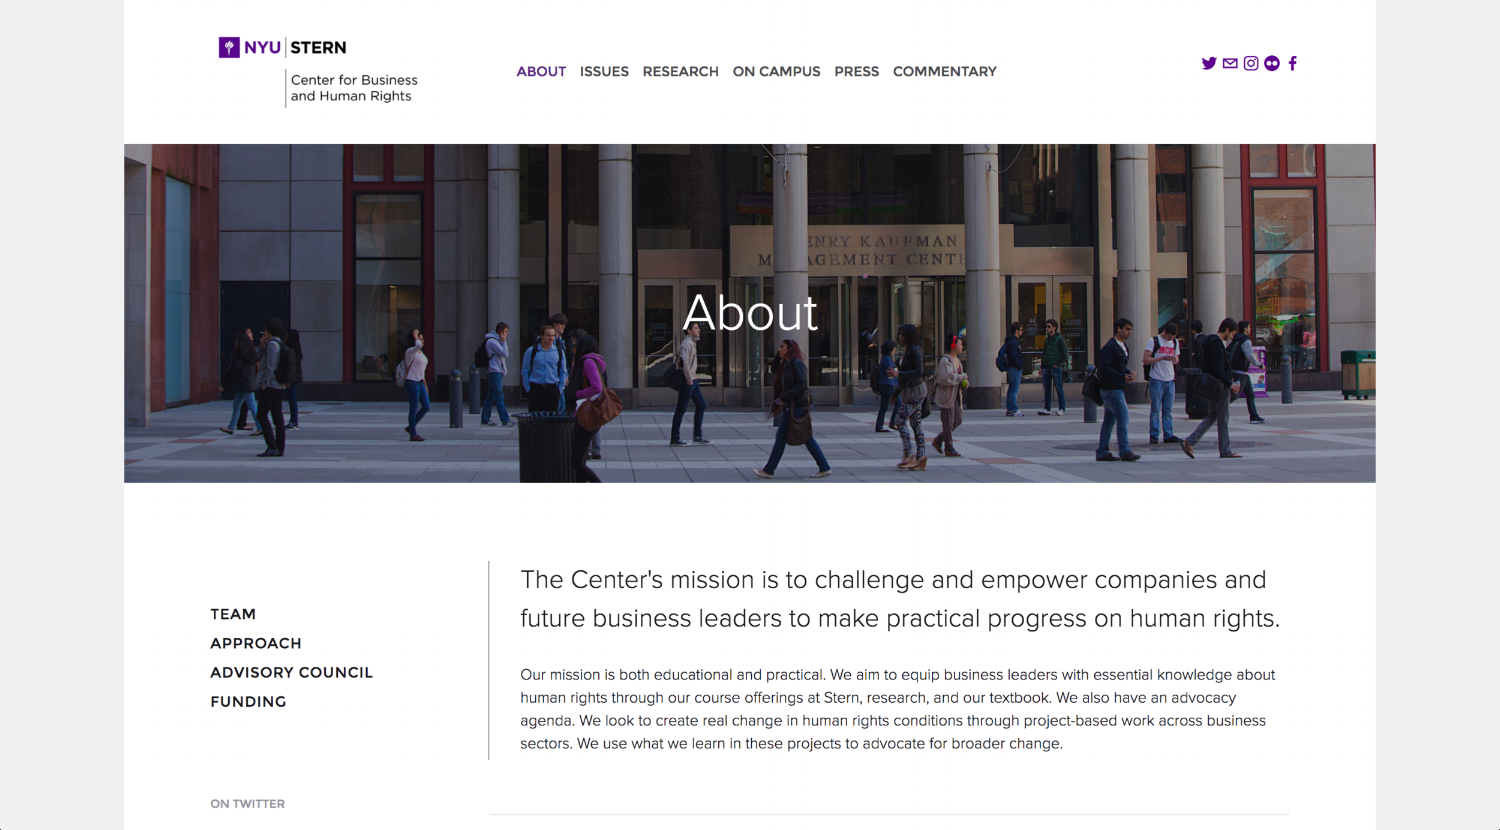 NYU Stern — Center for Business and Human Rights